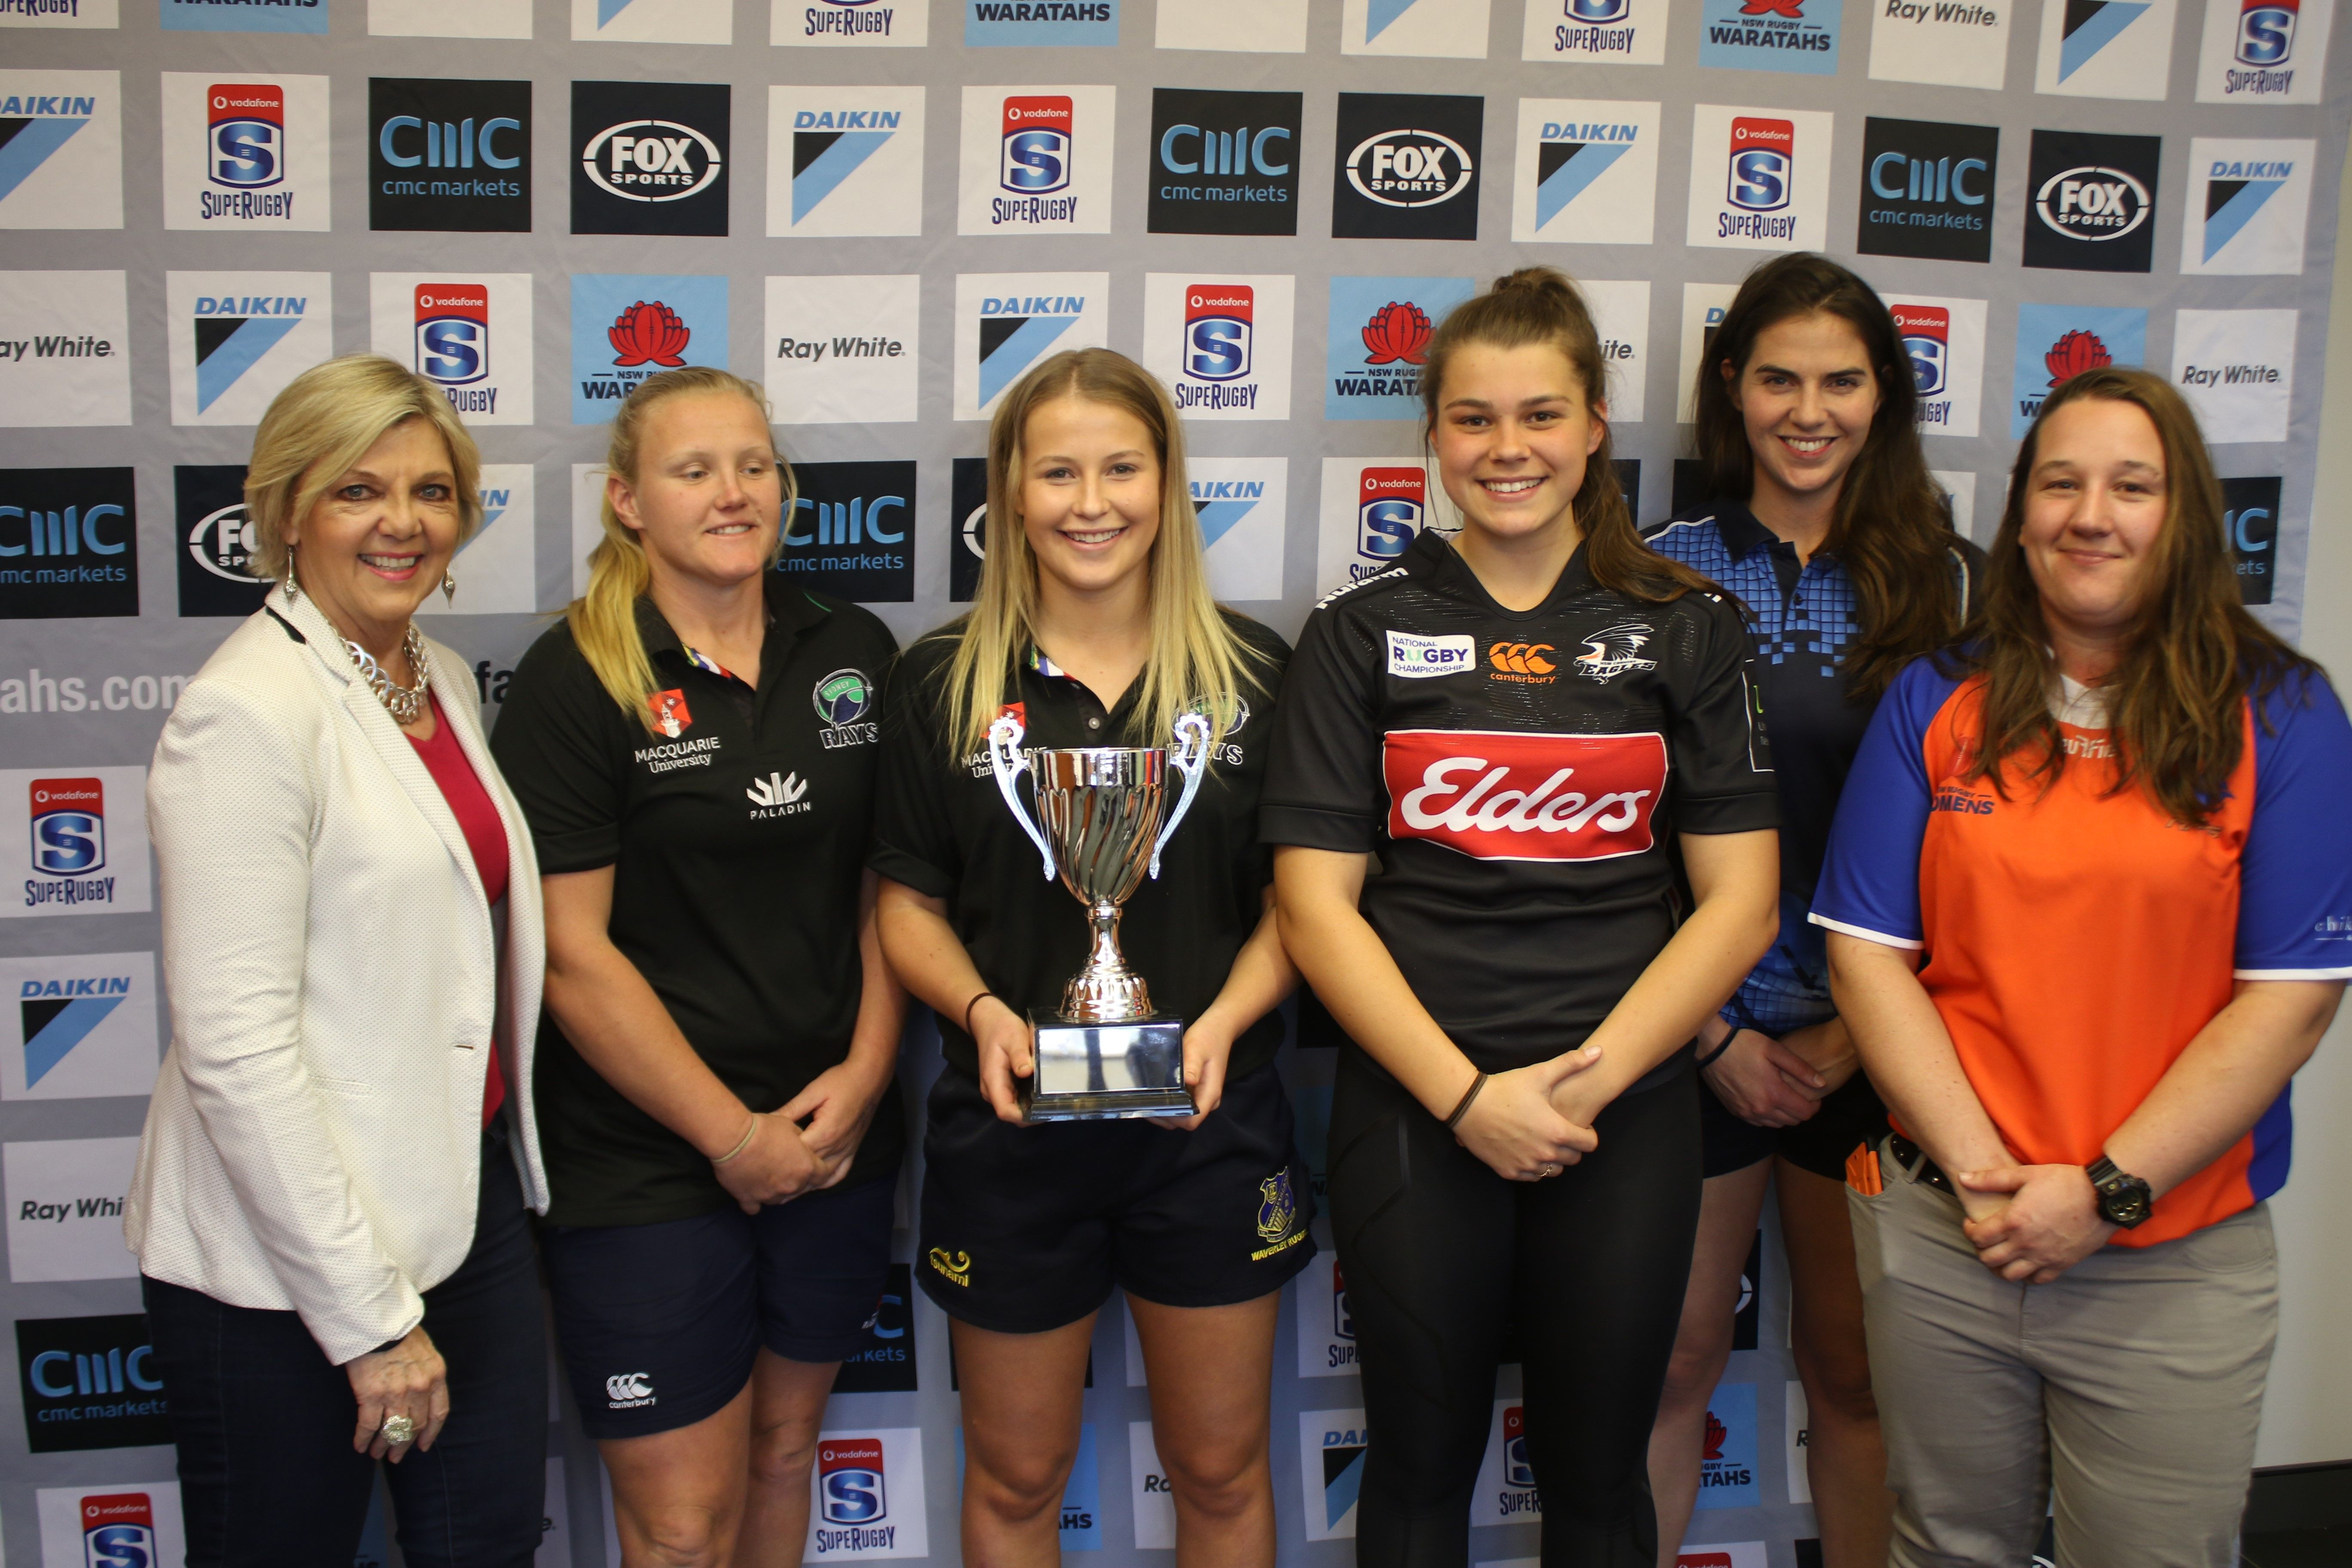 NSW WOMEN'S NRC TEAMS COMPETING FOR THE CHIKAROVSKI CUP